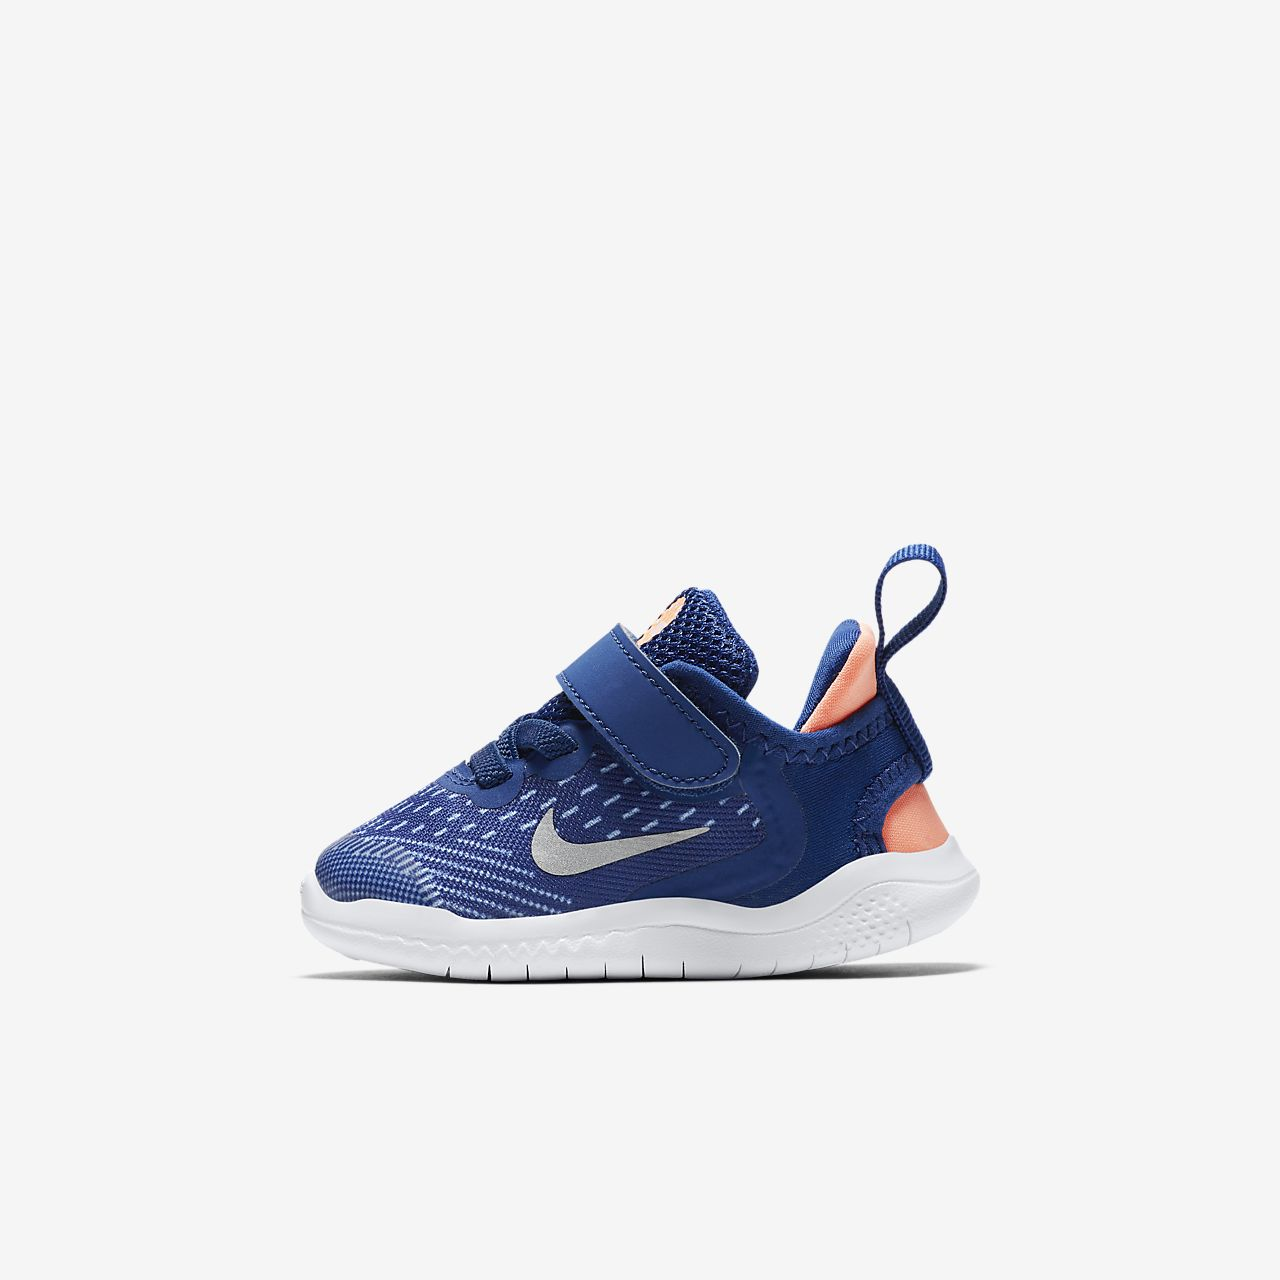 nike womens shoes clothing and gear nikecom - HD1280×1280